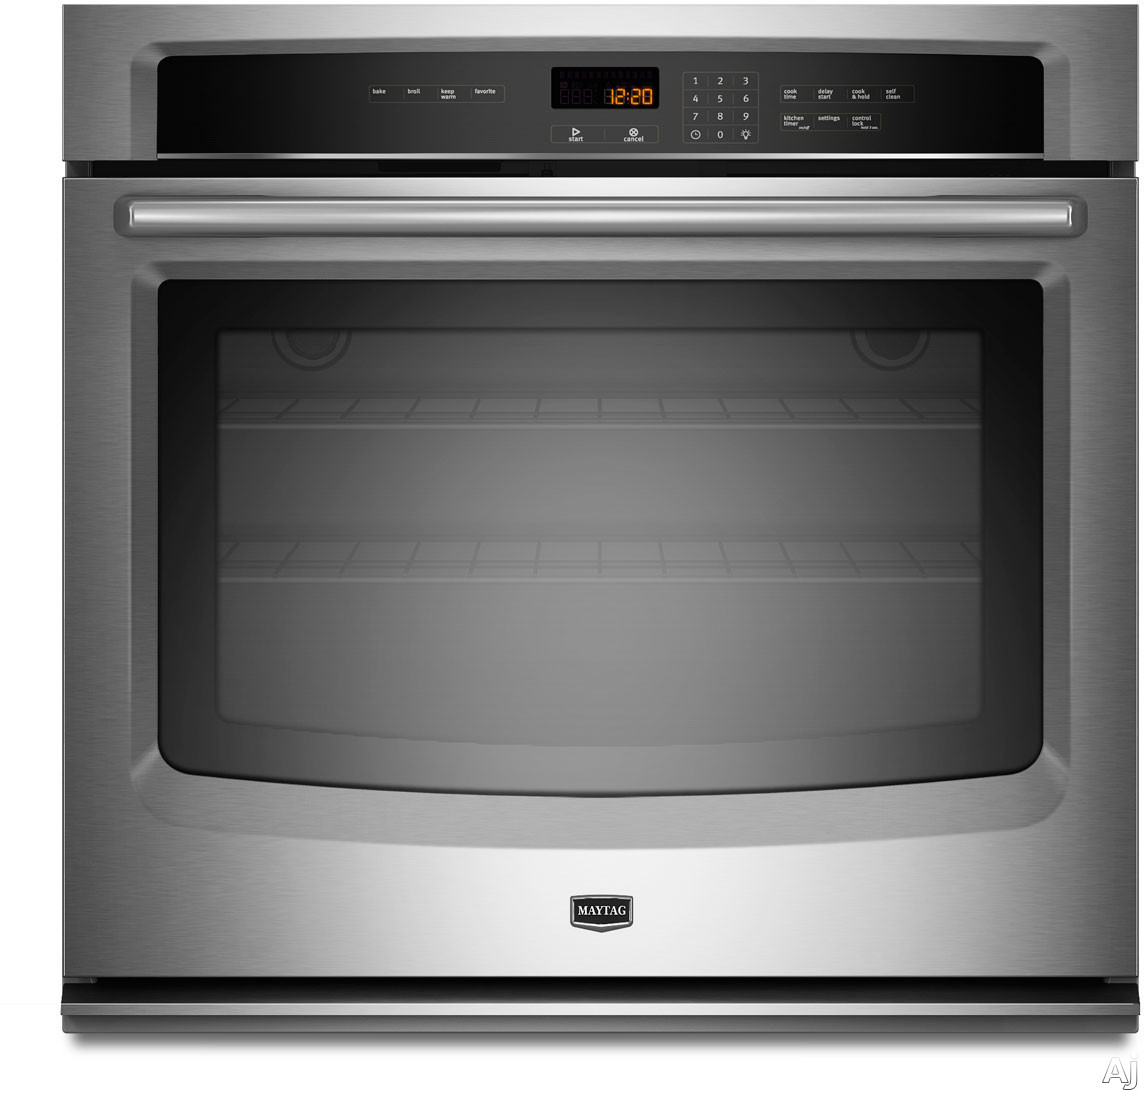 "Maytag MEW7530A 30"" Single Electric Wall Oven with 5.0 cu. ft. Capacity, Precise Cooking System, U.S. & Canada MEW7530A"